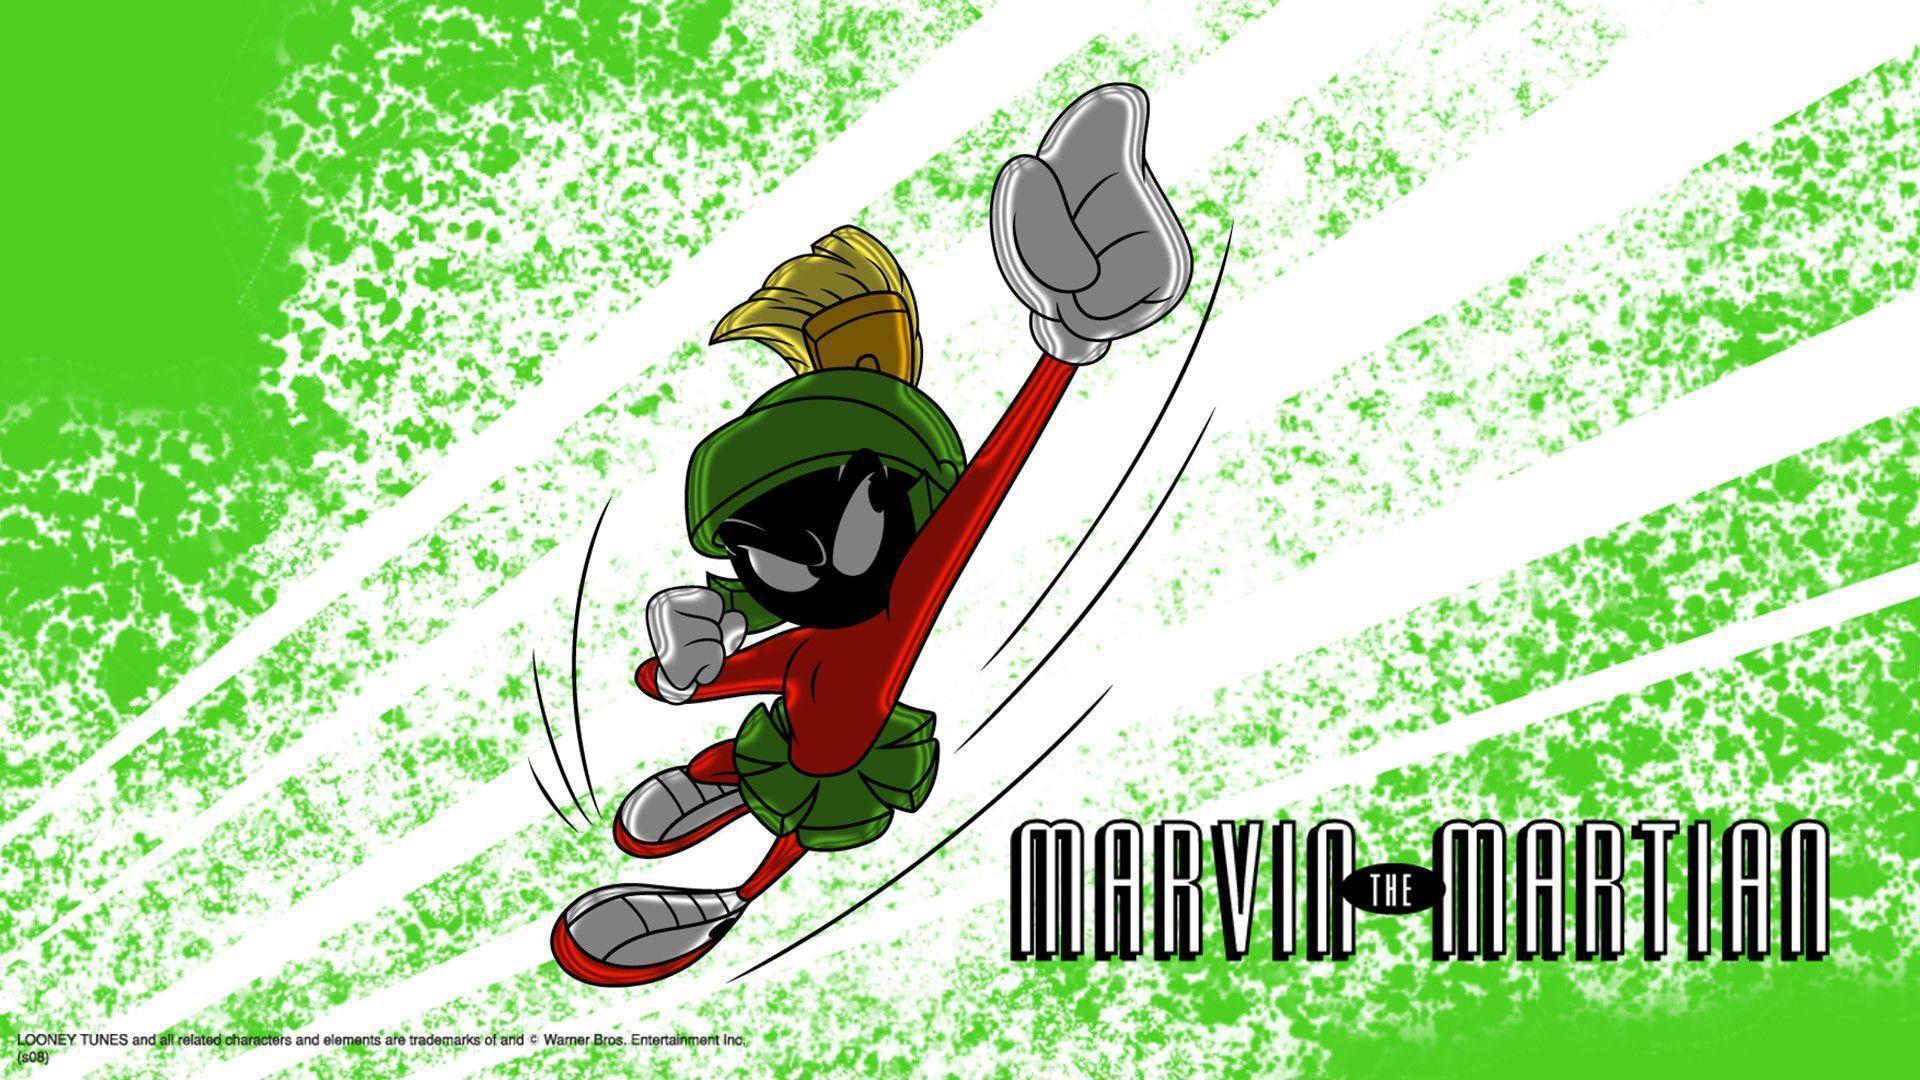 MARVIN THE MARTIAN: A SPACEY WALLPAPER